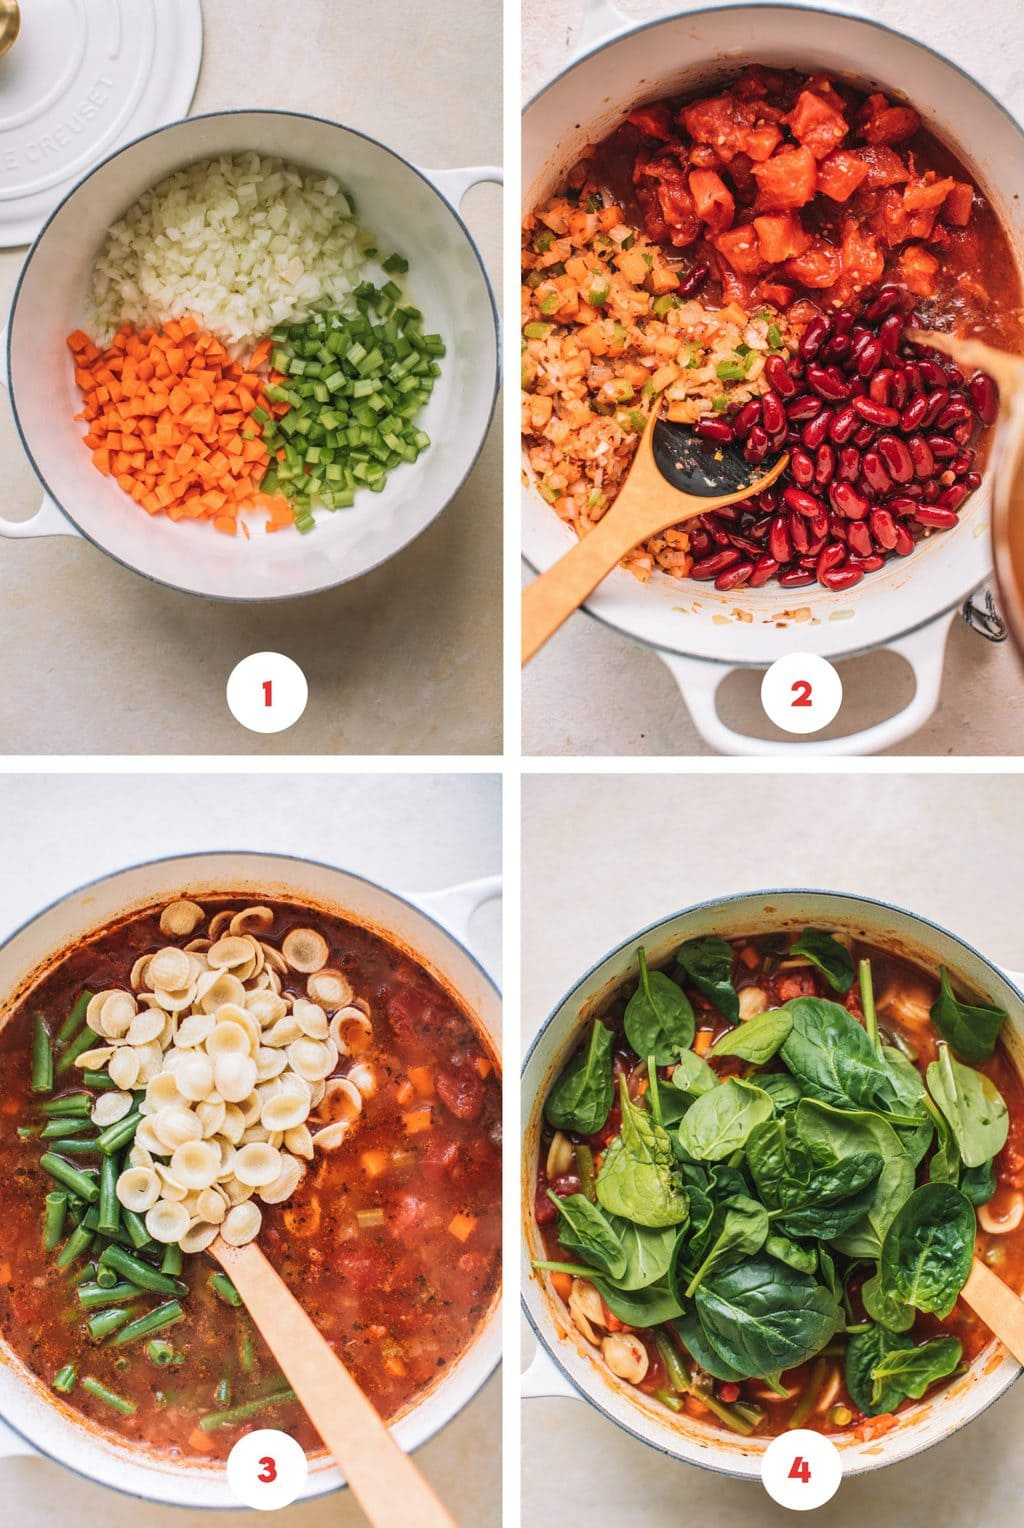 Step by step photos showing how to make Minestrone Soup Olive Garden Style.